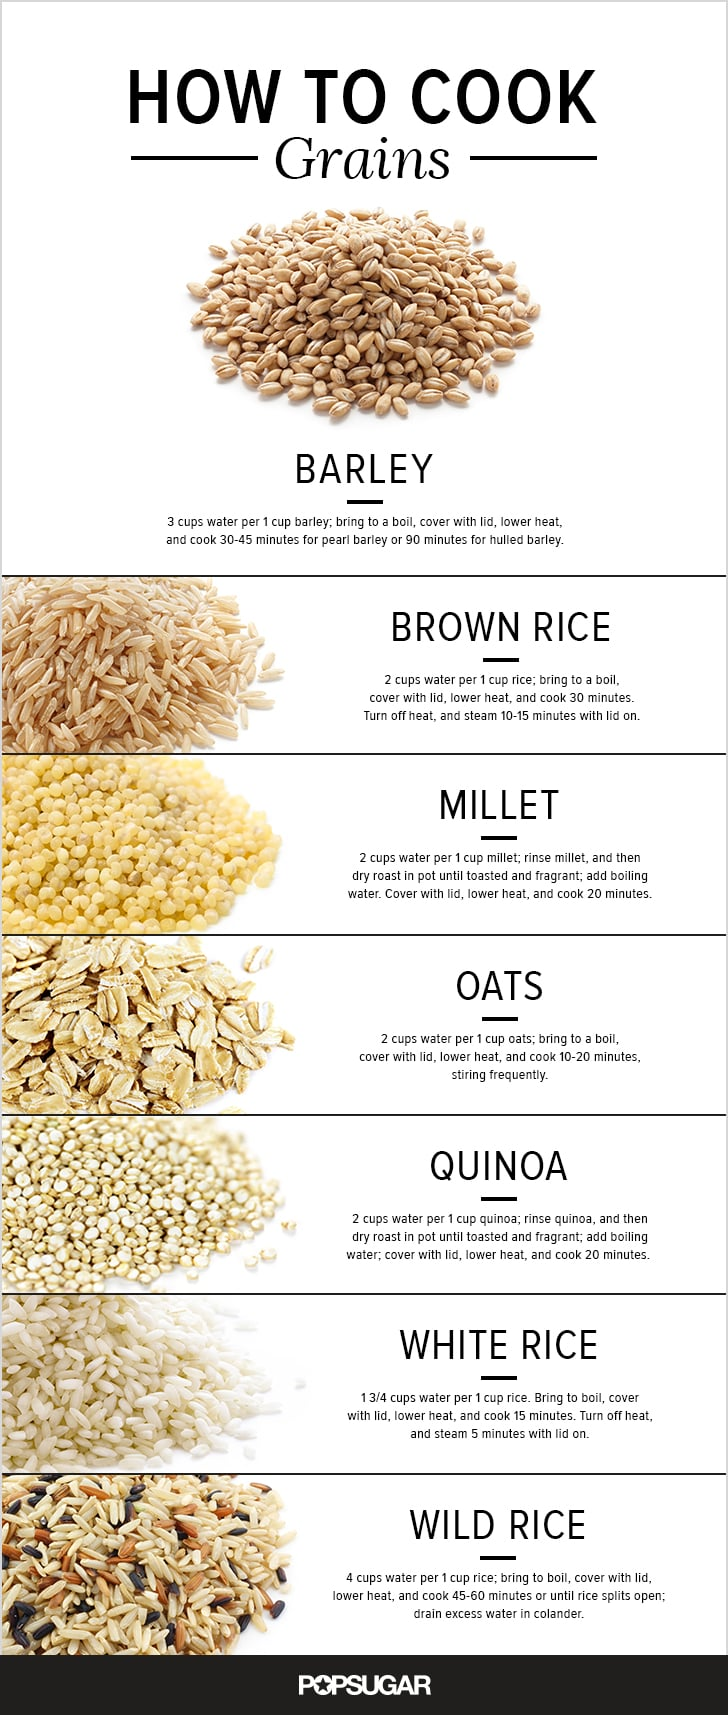 The Ultimate Cooking Guide to Grains | Diagrams For Easier Healthy Eating